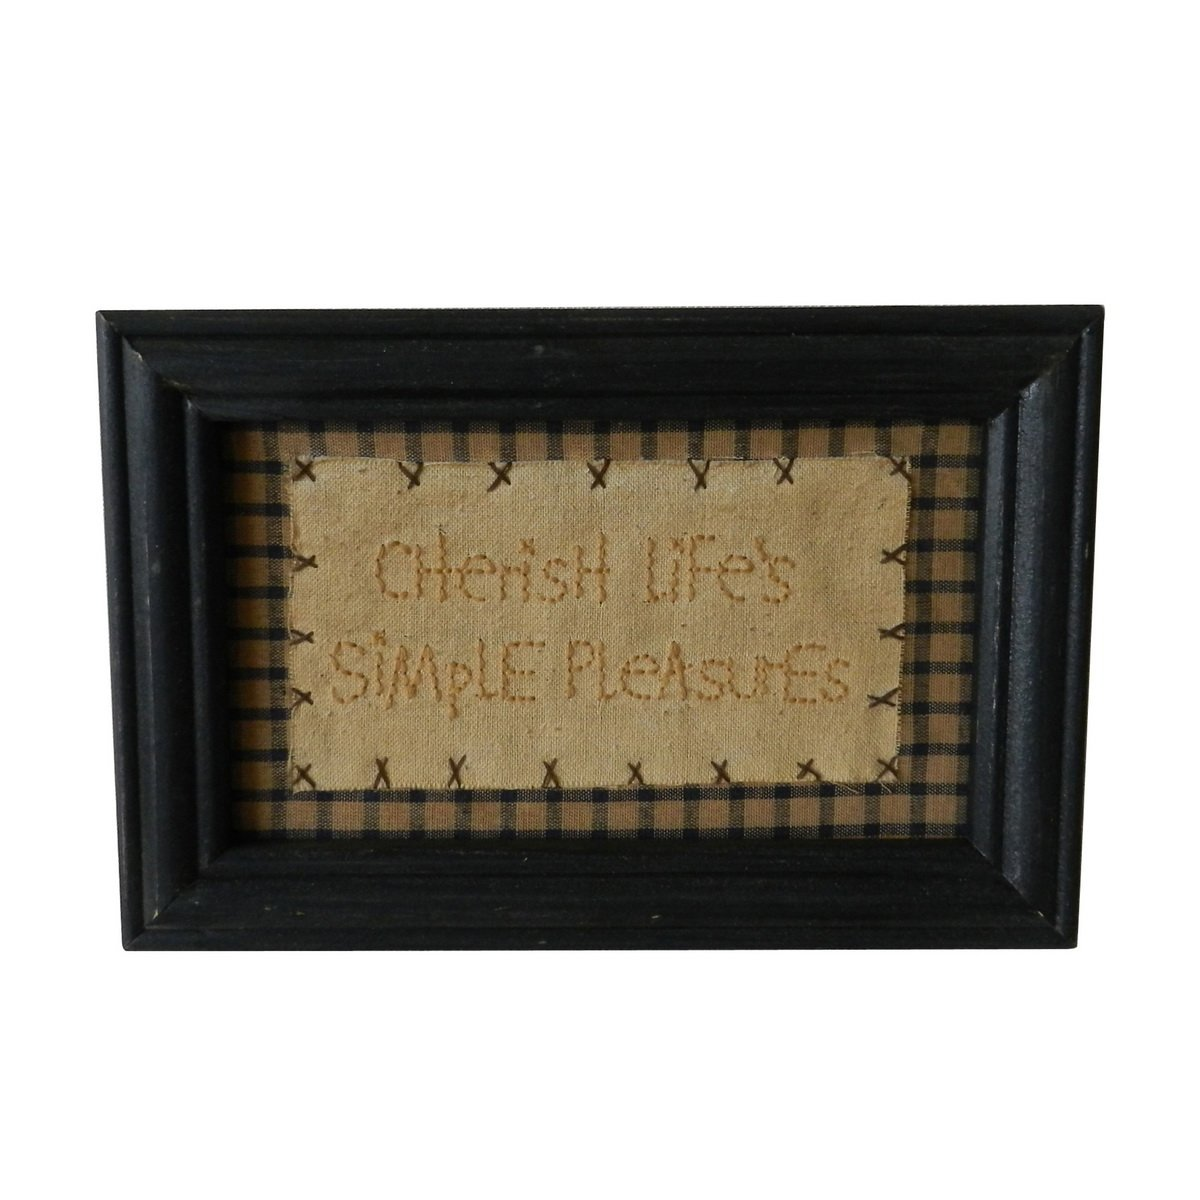 CVHOMEDECO 11 x 14 Primitives Antique Bless This House o Lord we Pray Keep it Safe Both Night /& Day Stitchery Frame Wall Mounted Hanging Decor Art